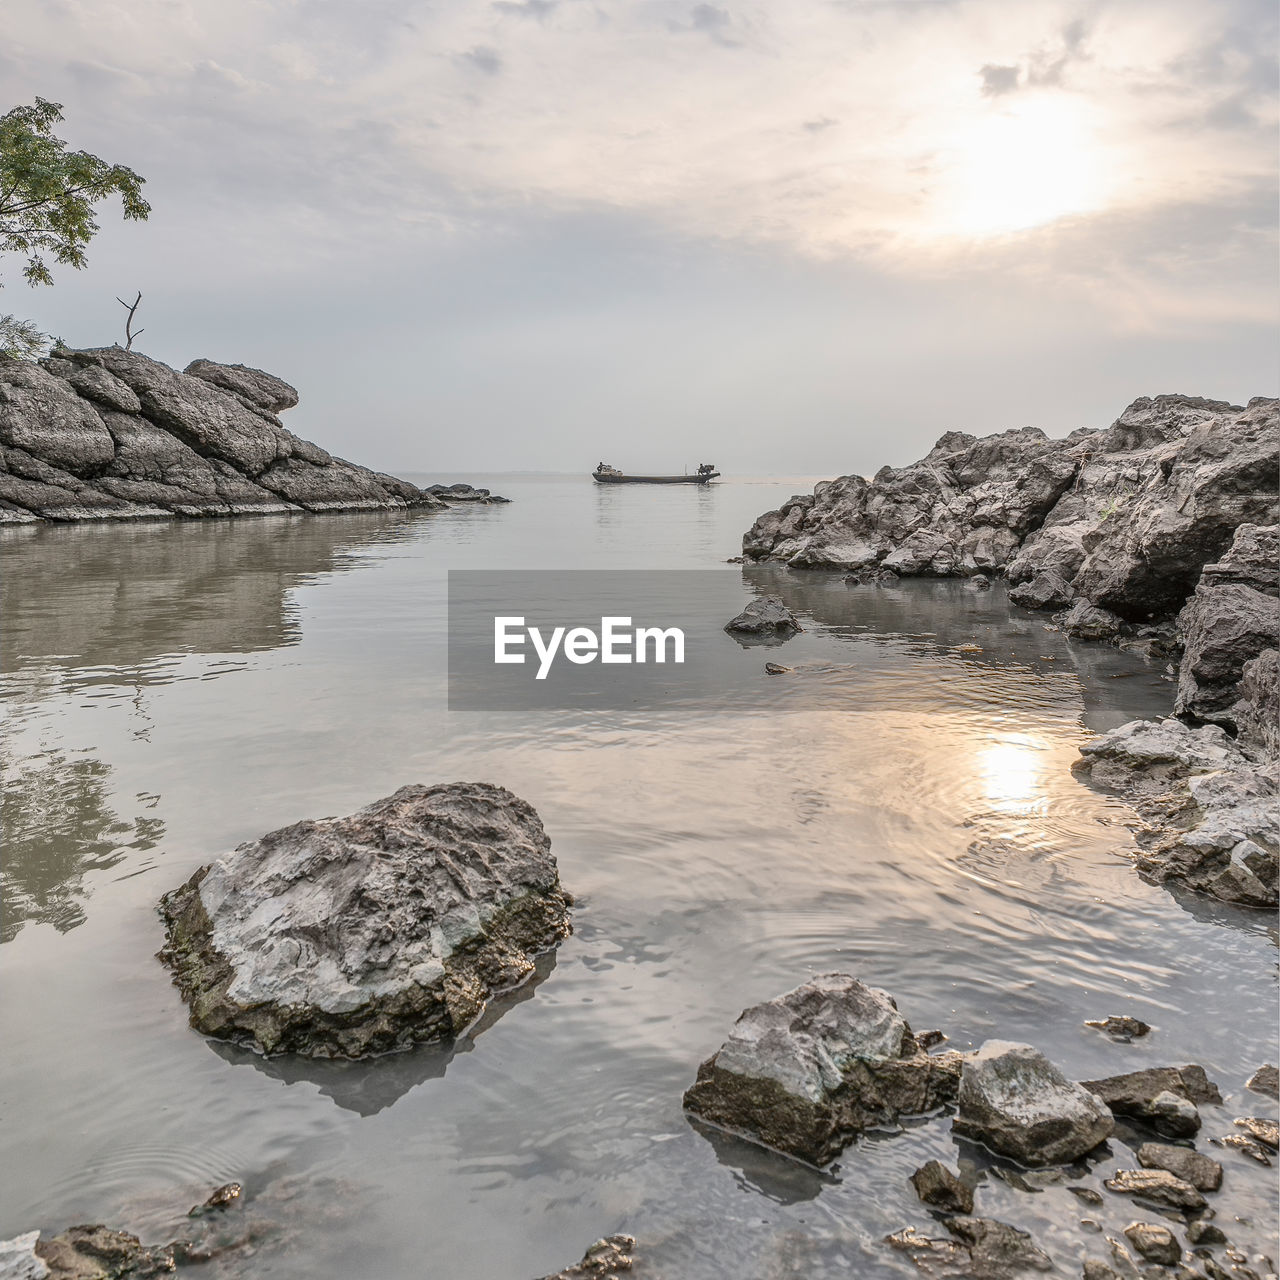 water, sky, rock, solid, rock - object, beauty in nature, scenics - nature, tranquility, sea, tranquil scene, nature, reflection, cloud - sky, no people, idyllic, beach, non-urban scene, rock formation, sunset, outdoors, shallow